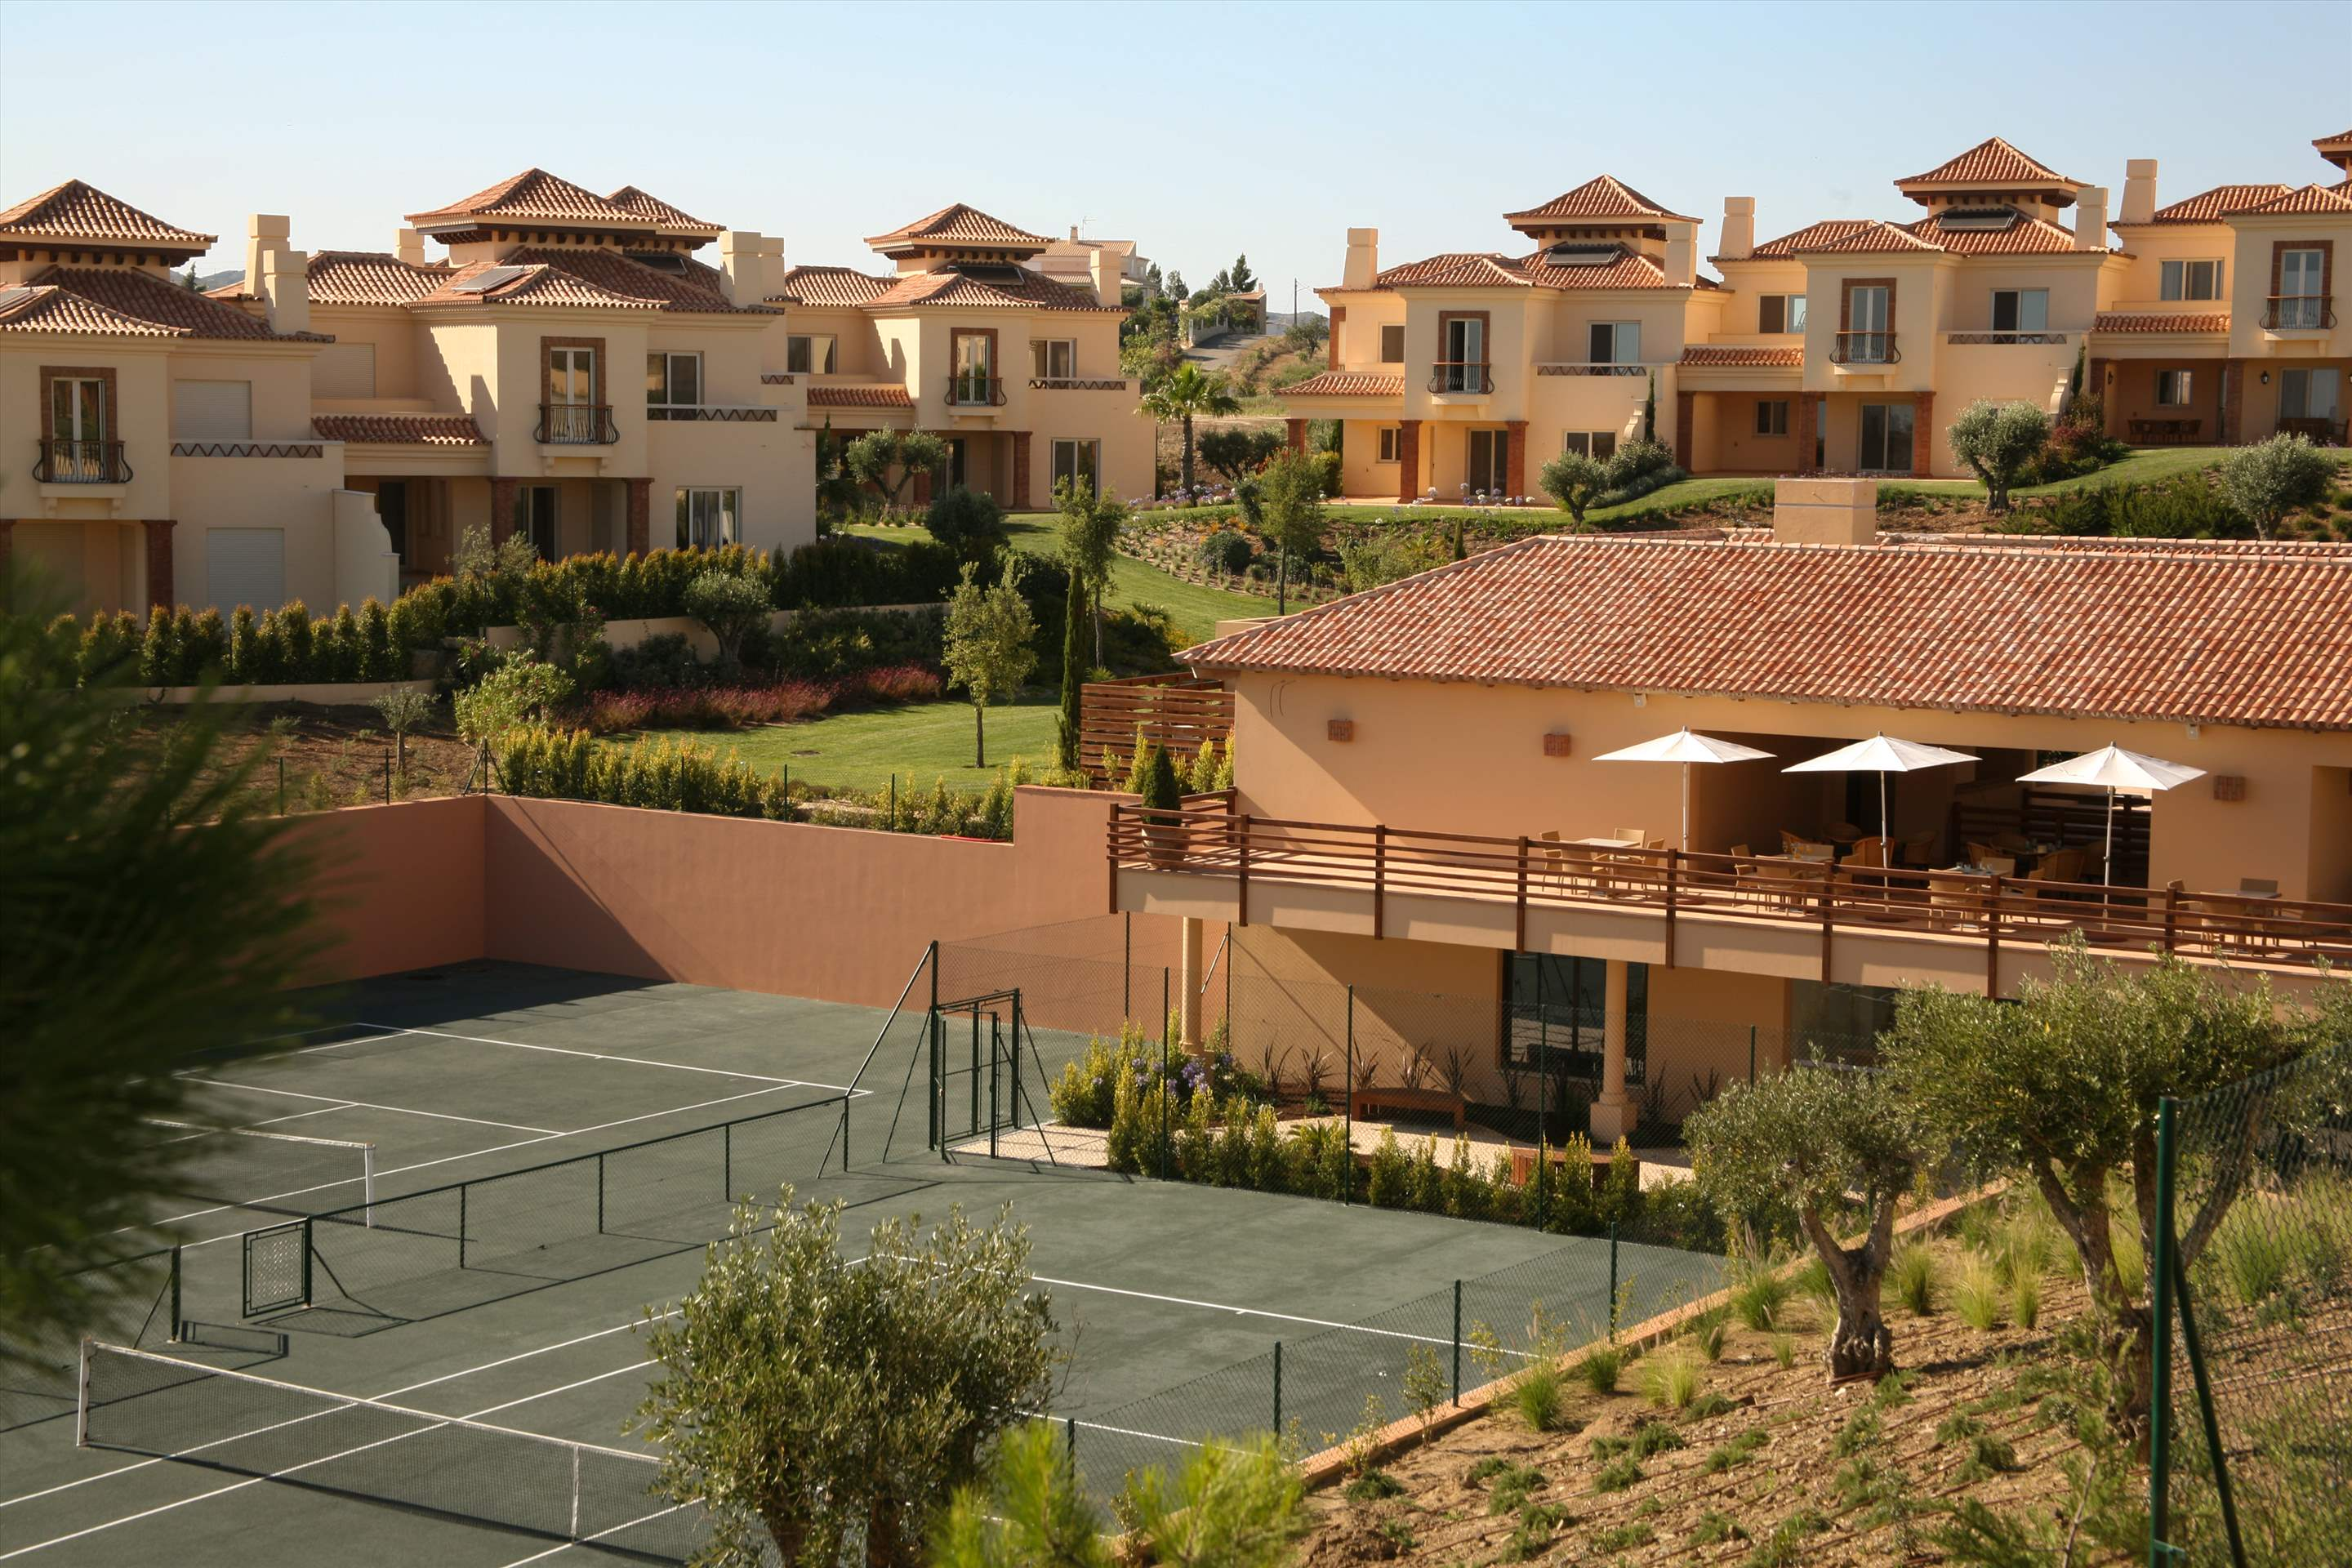 Monte Rei Three Bedroom Villa with Private Pool, 3 bedroom villa in Monte Rei Country Club, Algarve Photo #15